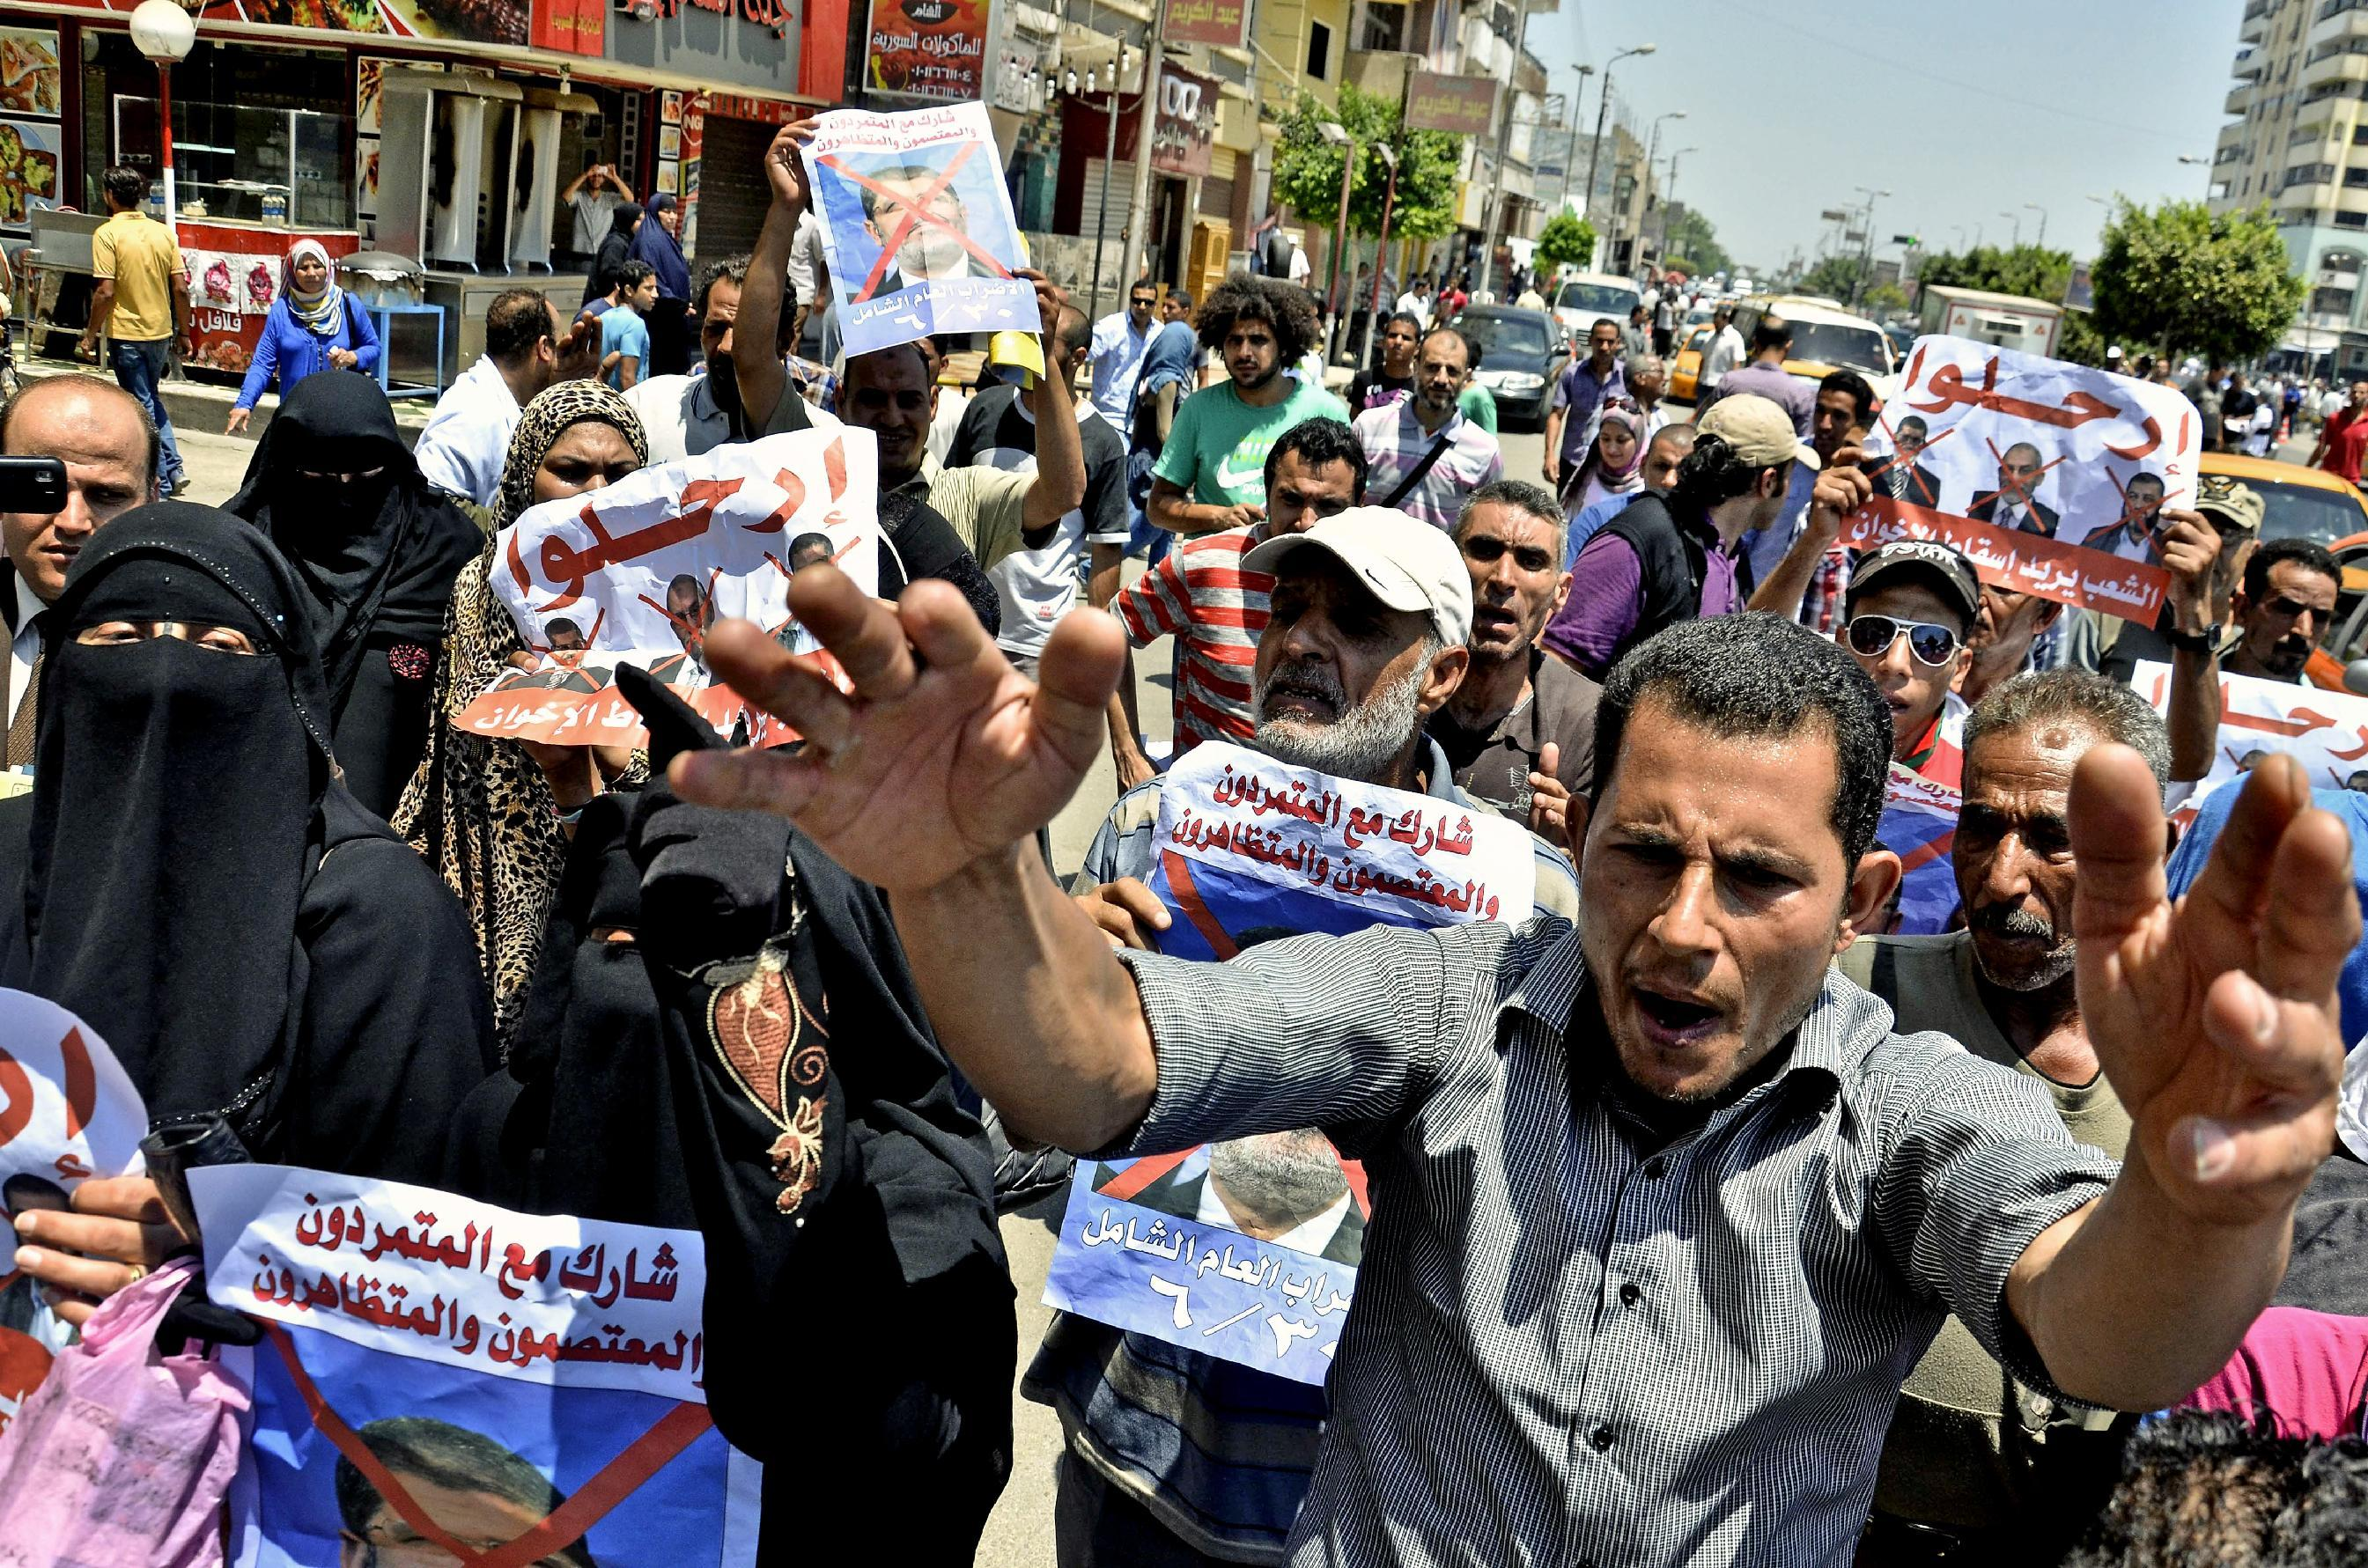 """Protesters chant slogans against Egyptian President Mohammed Morsi outside a court in Ismailia, 139 Kilometers (86 miles) from Cairo, Egypt, Sunday, June 23, 2013. An Egyptian court on Sunday said Muslim Brotherhood members conspired with Hamas, Hezbollah and local militants to storm a prison in 2011 and free 34 Brotherhood leaders, including Morsi. The poster, bottom left, in Arabic reads, """"join the rebels, the protesters, and demonstrators.""""(AP Photo/Mostafa Darwish)"""